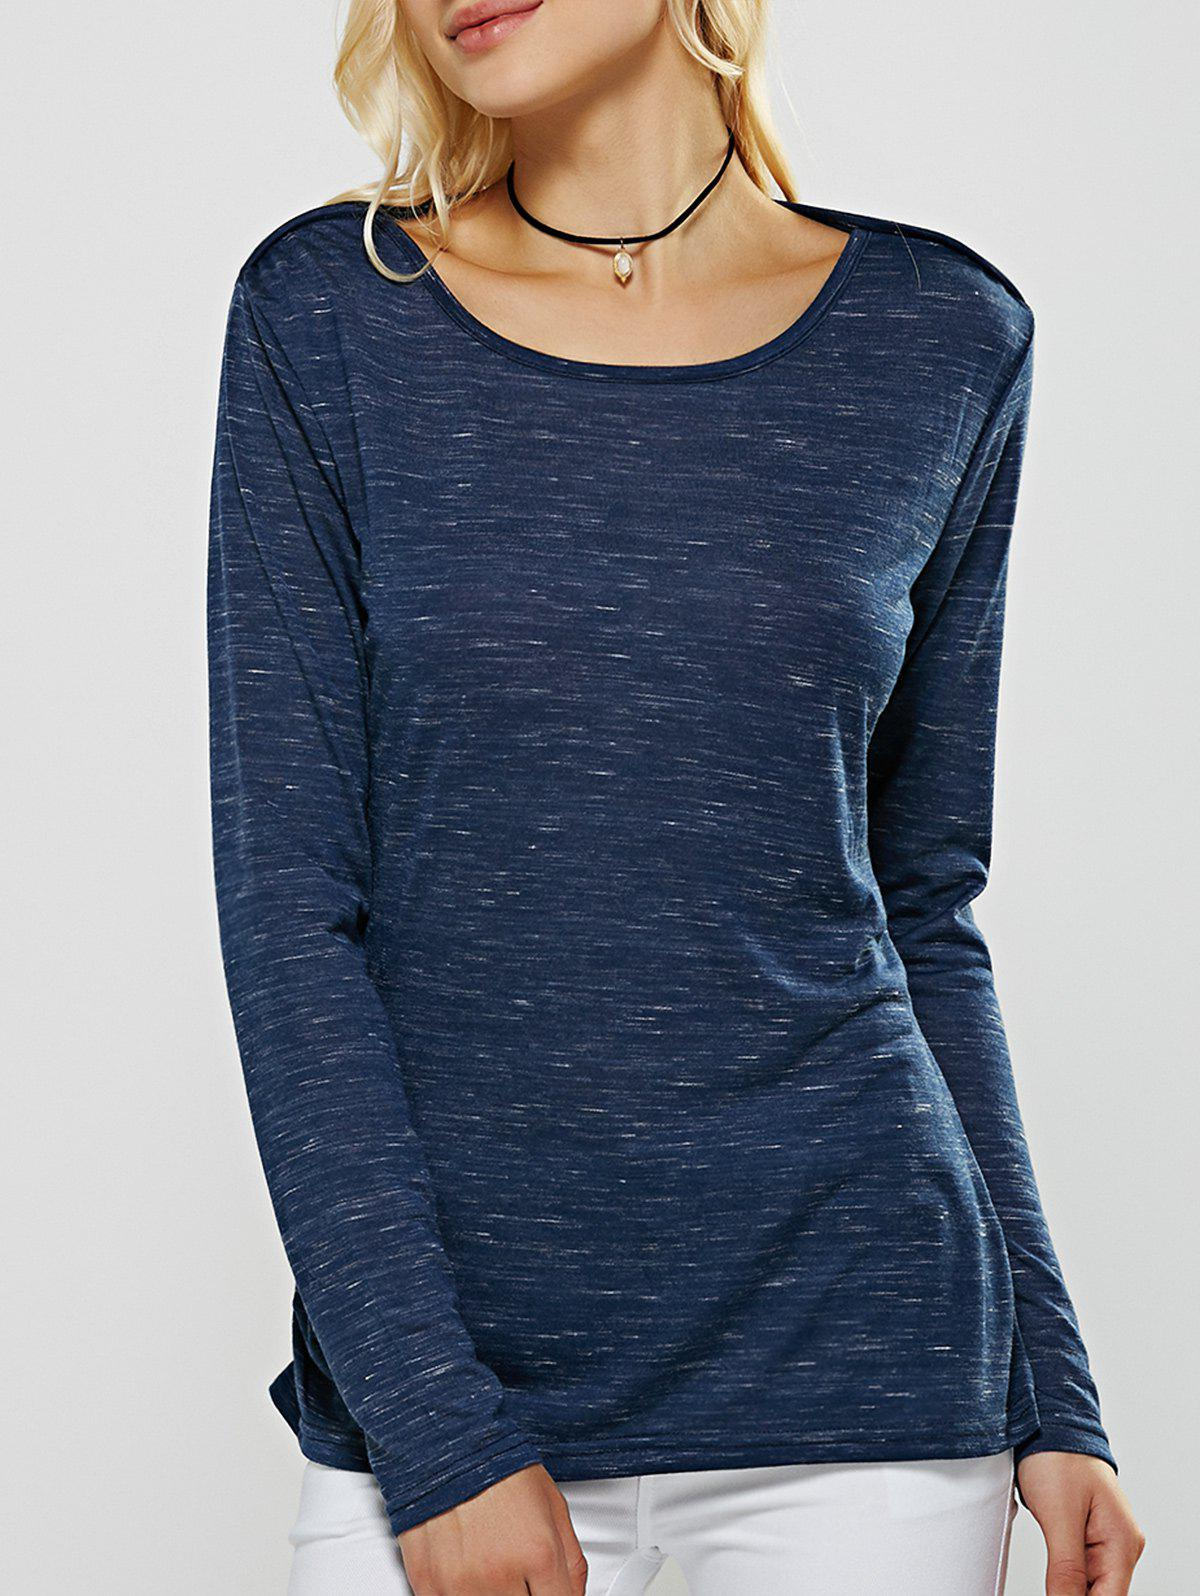 Heathered Long Sleeves Loose-Fitting T-Shirt